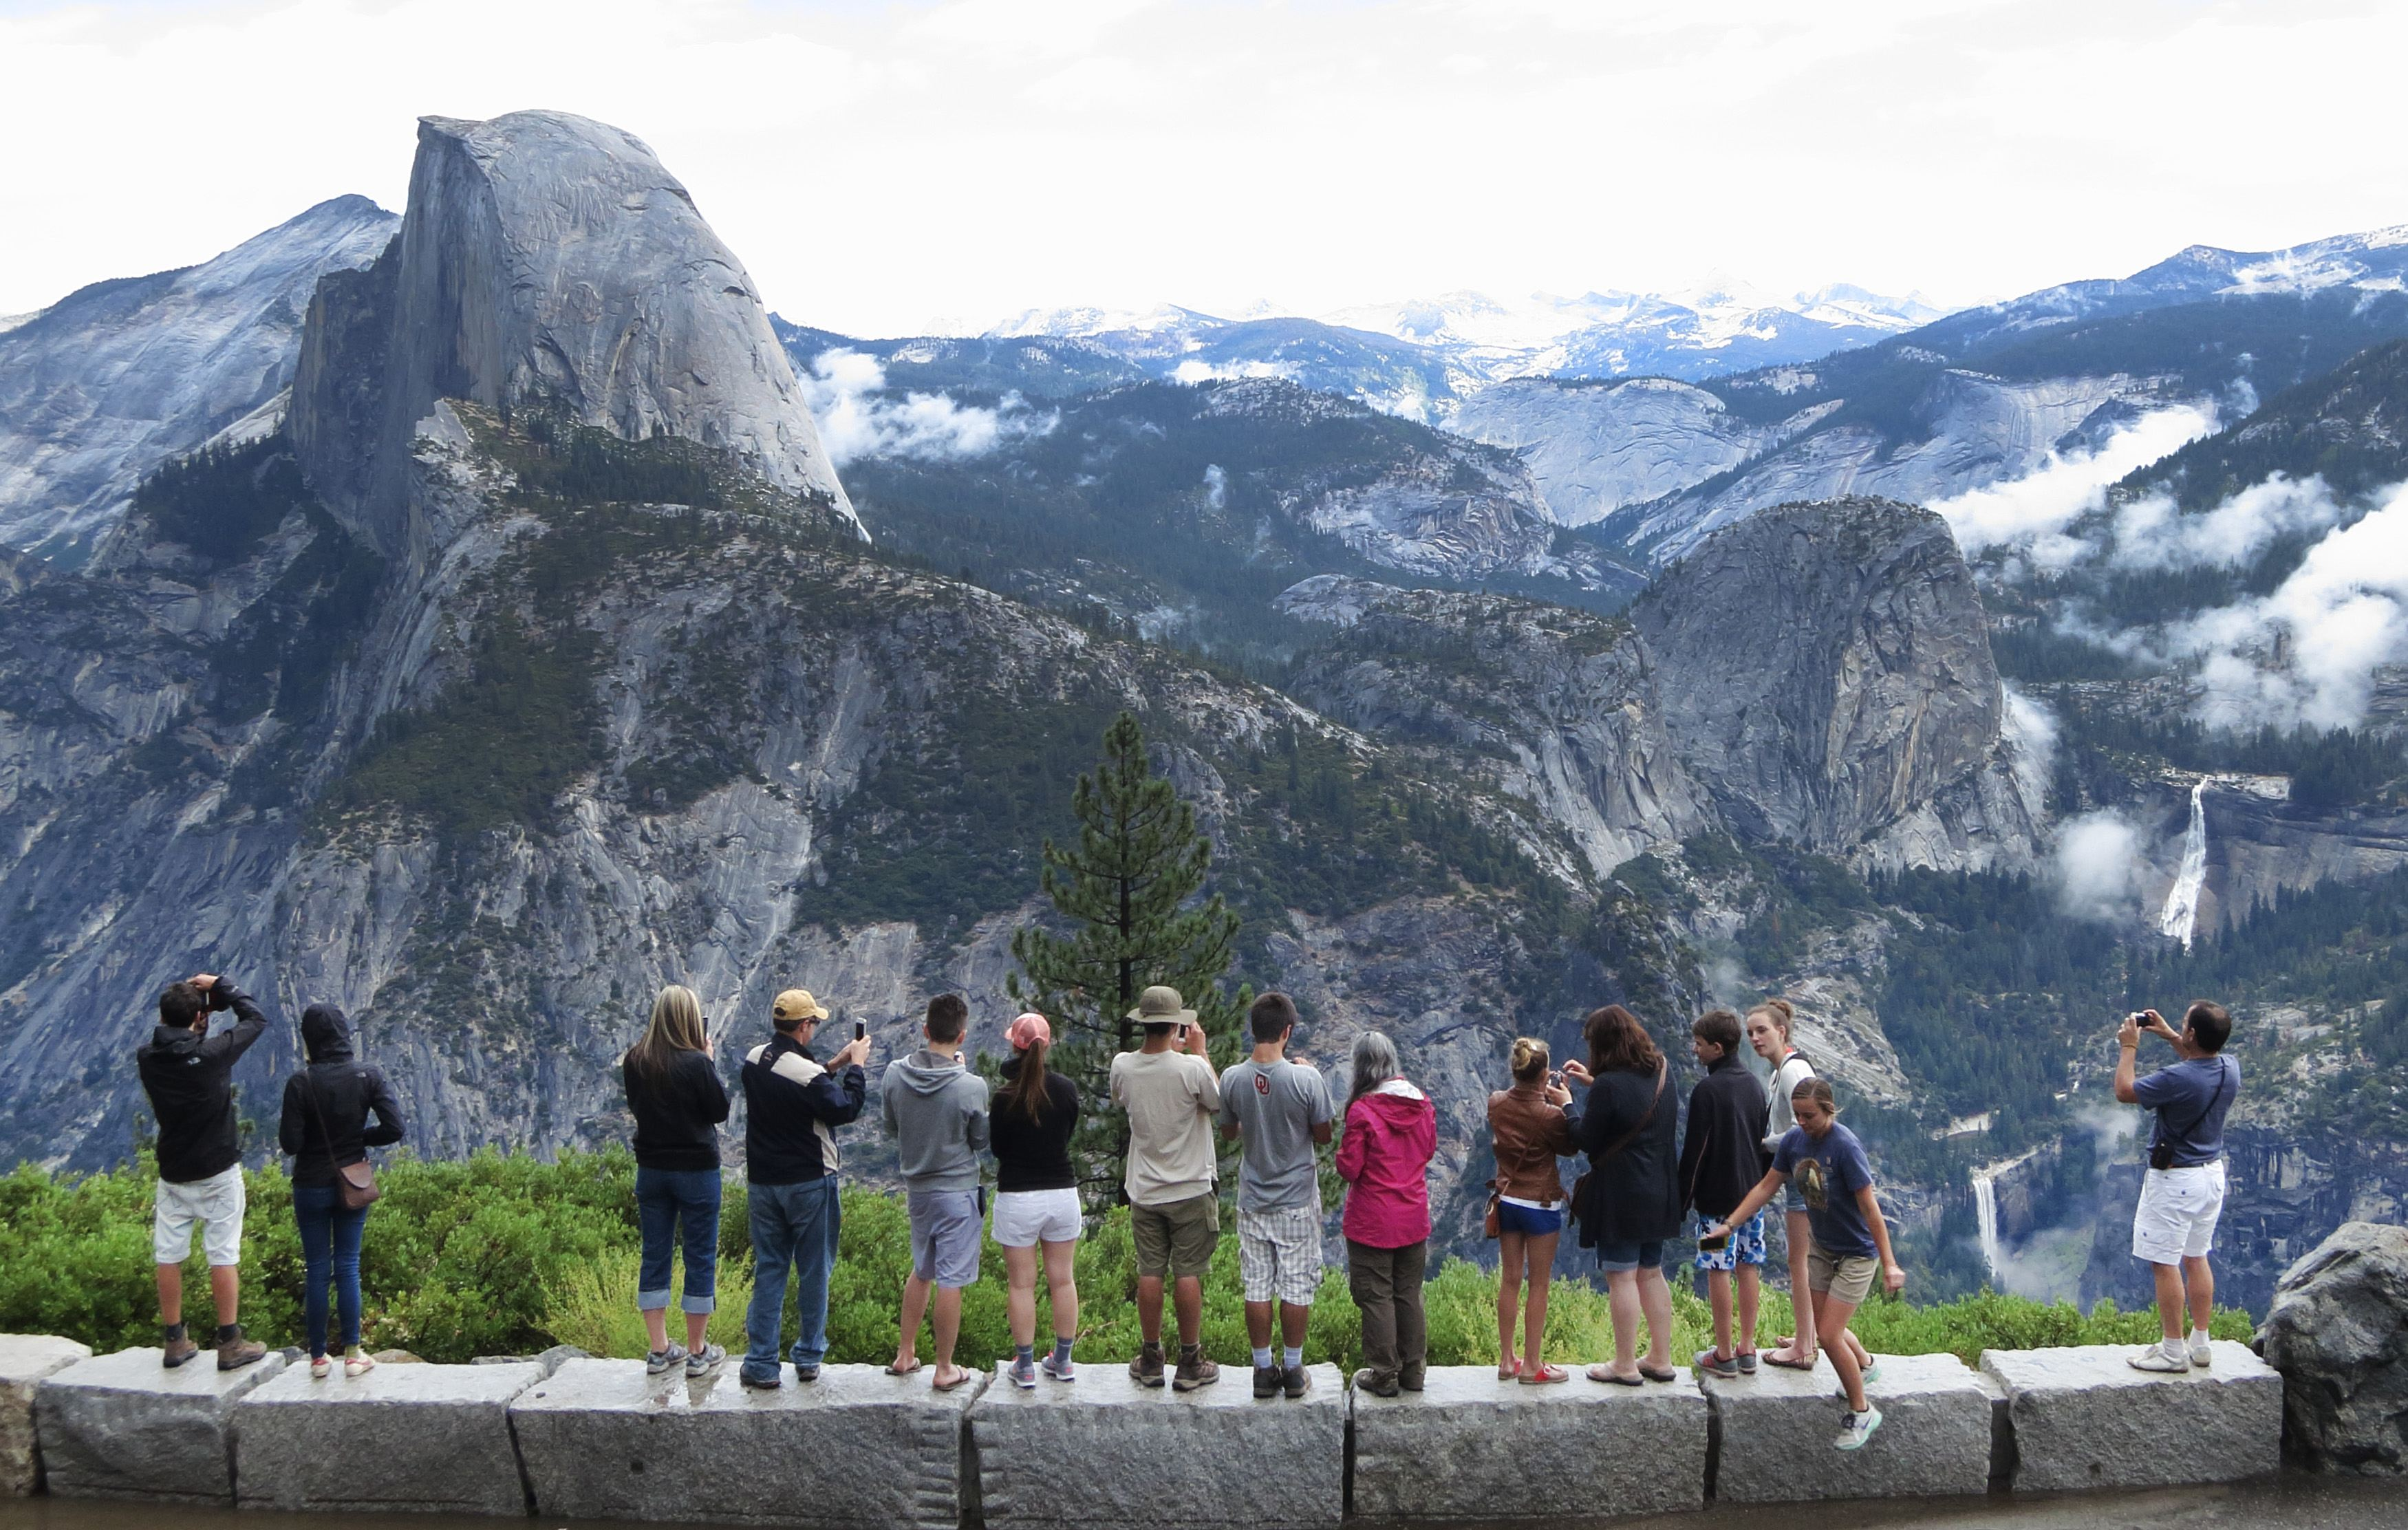 Visitors look out at Yosemite National Park from Glacier Point